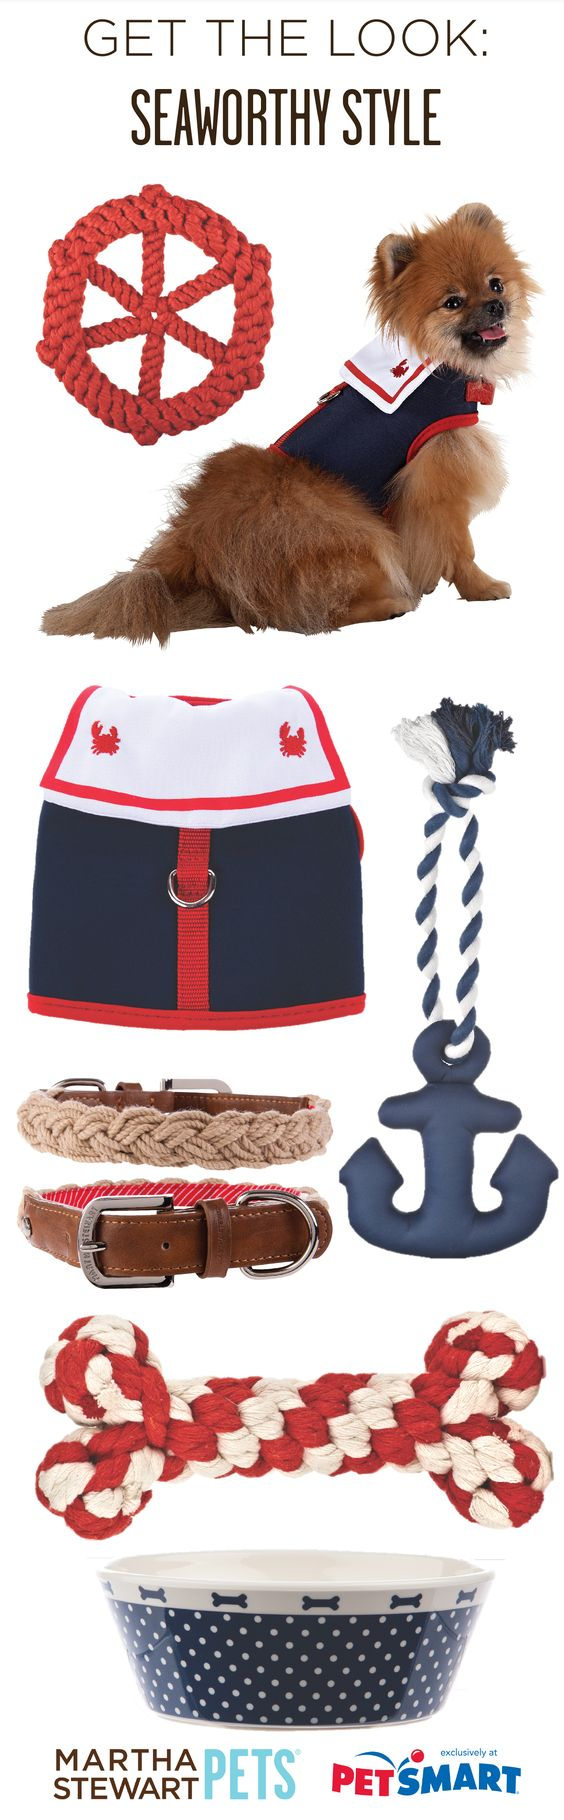 Get The Look: Seaworthy Style